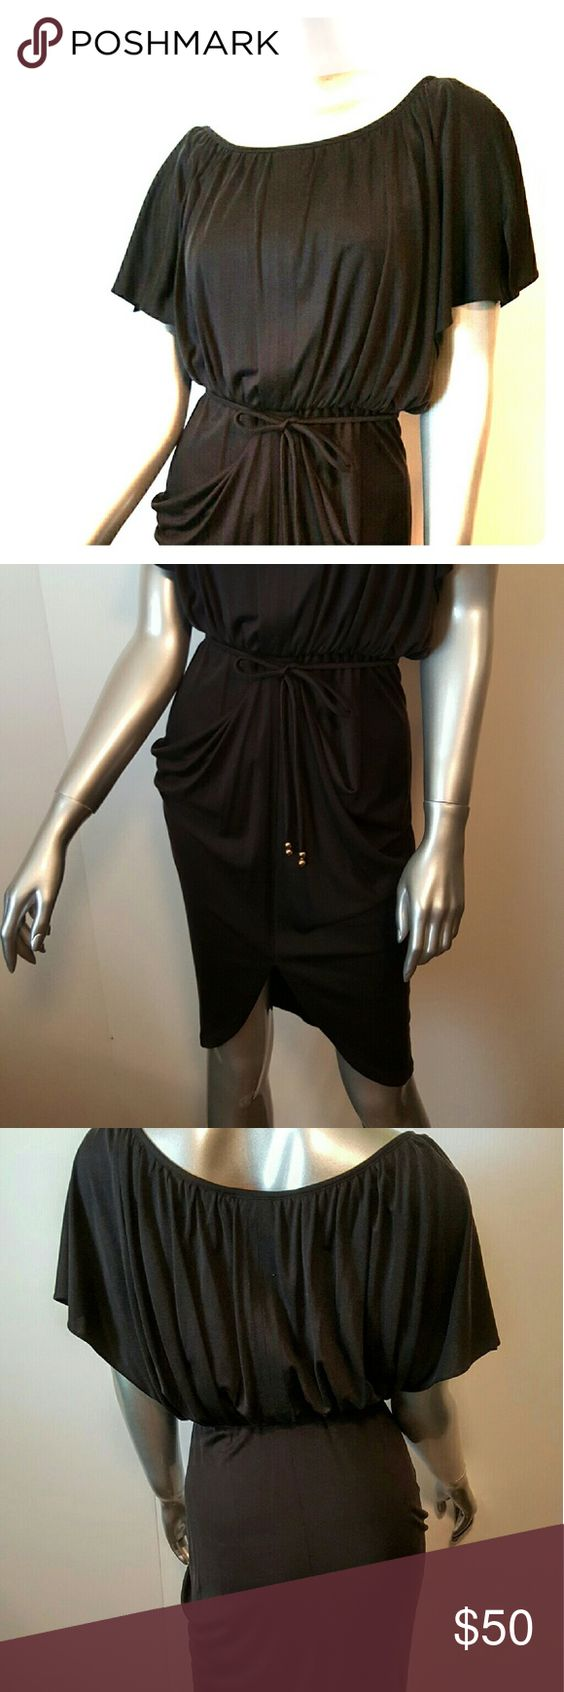 "YOANA BARASCHI for Anthropologie Silk Dress Sz XS Stunning Dress!   Prestine condition-maybe worn once   Blouson style   Elasticized waist with belt detailed with 2 gold beads at ends   Beautiful Grecian draped bottom   Fabrication- 100% Silk  Color- True Black   Measurements- Chest =31""Waist=12""   Feel free to contact me with any questions or concerns prior to purchase   Thank you for looking in my closet! kostkutter Anthropologie Dresses"